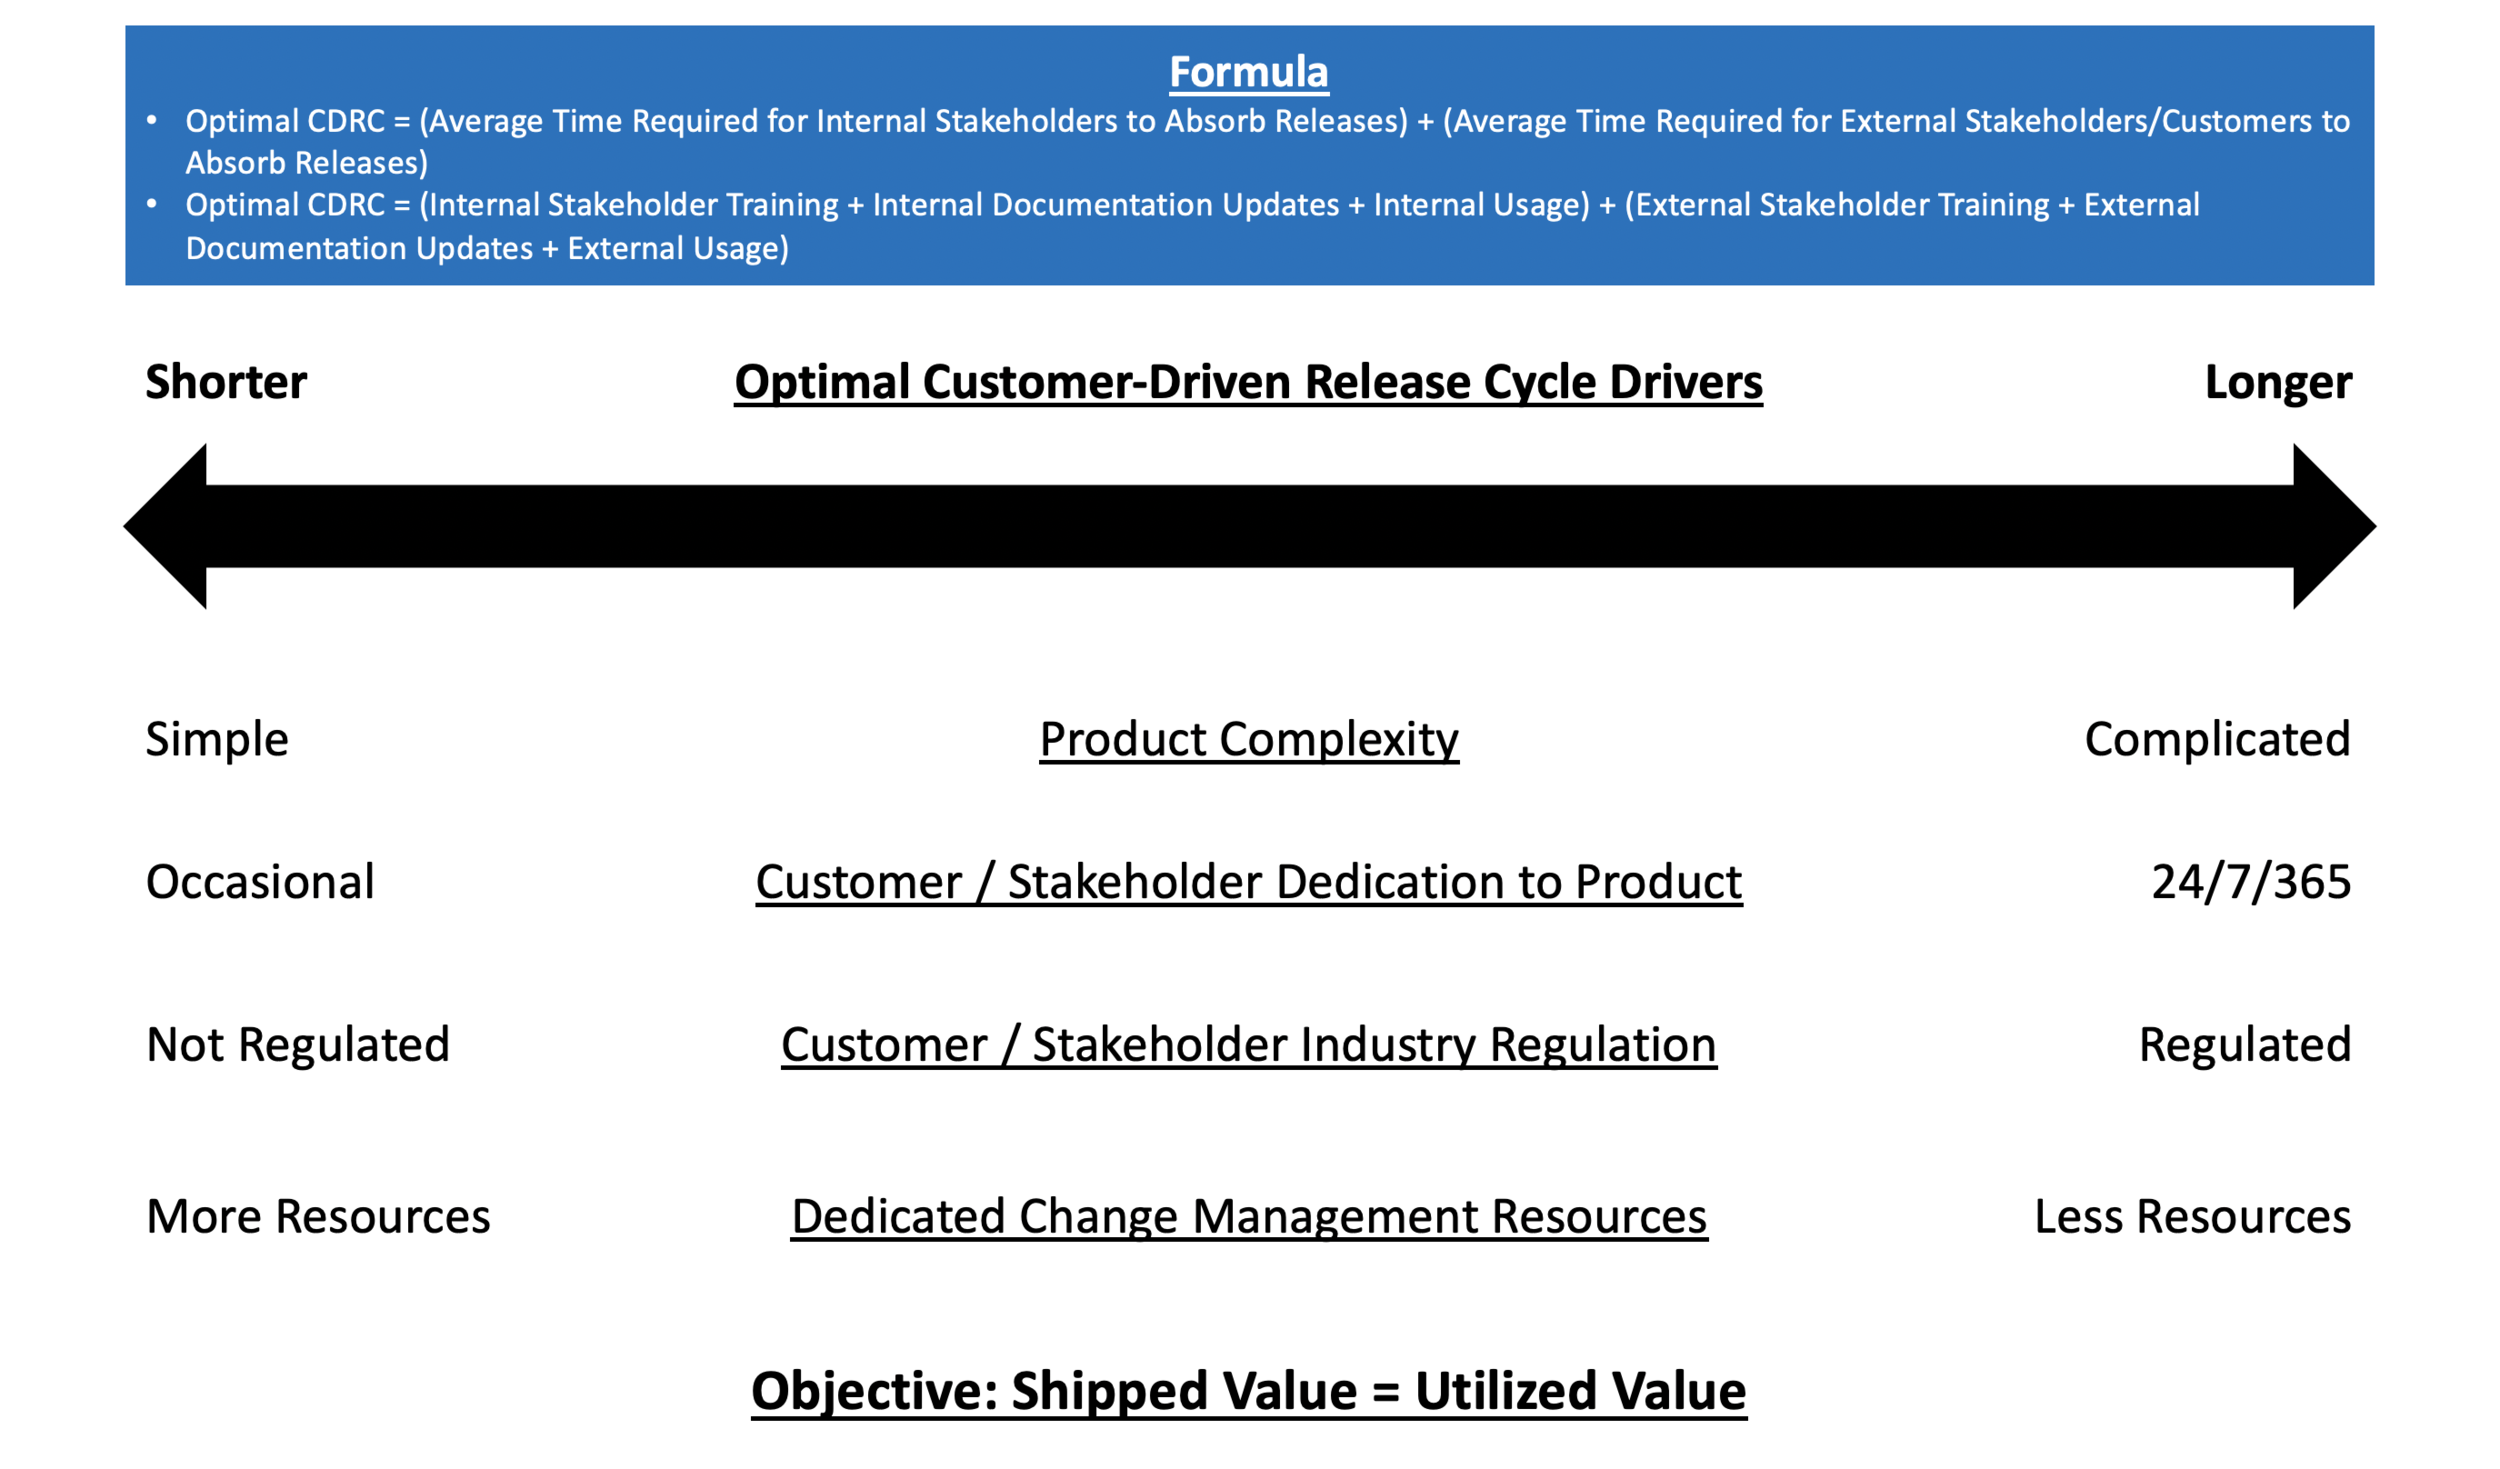 Optimal Customer-Driven Release Formula